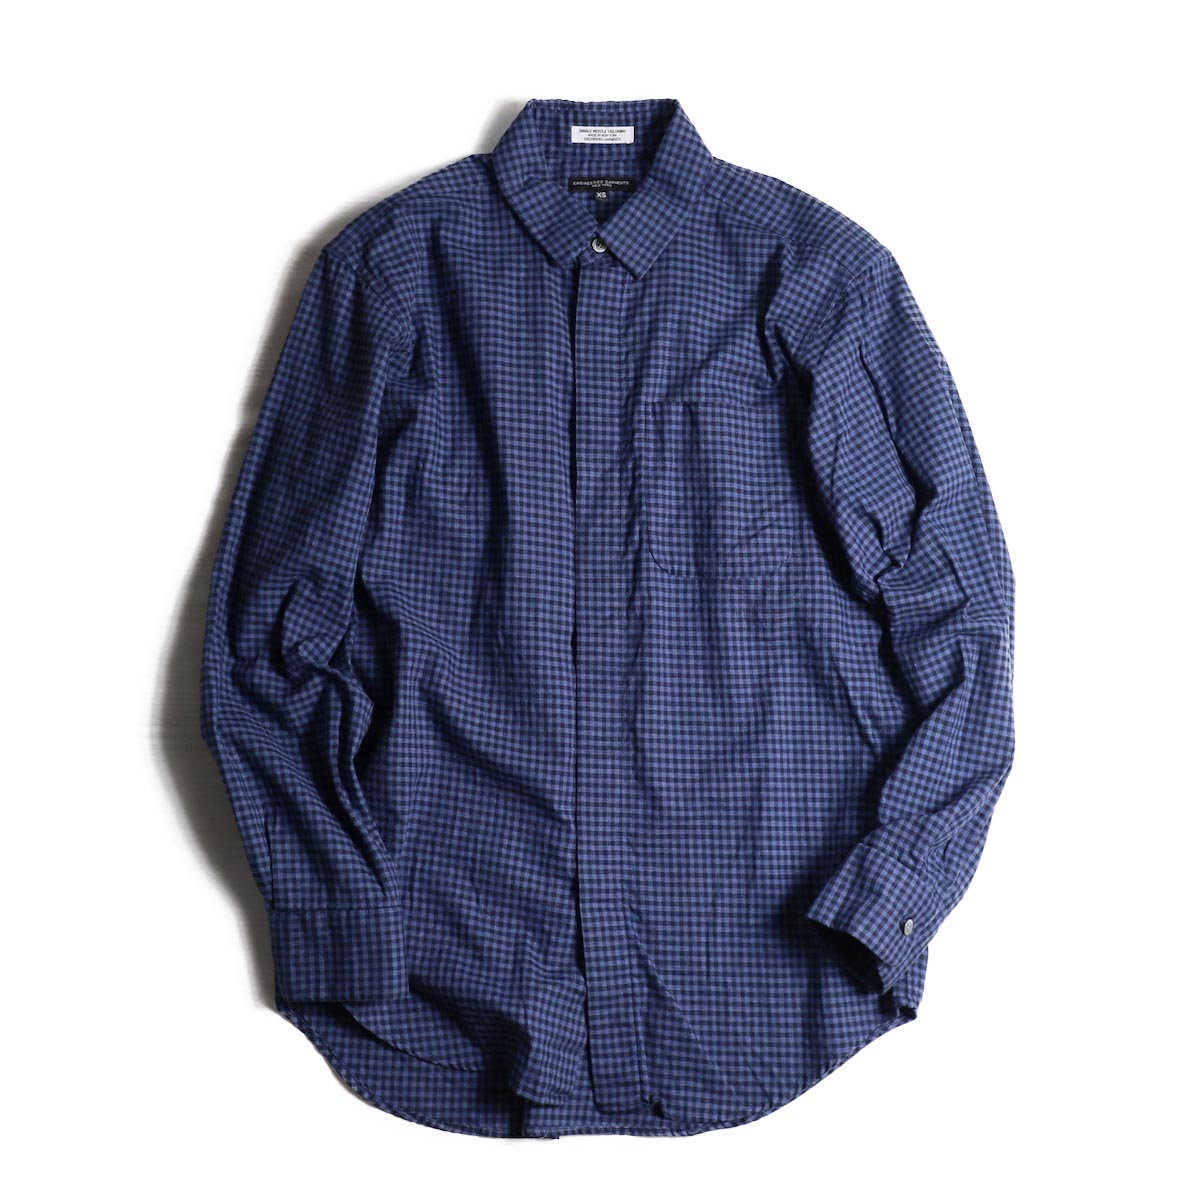 ENGINEERED GARMENTS / Short Collar Shirt -Gingham Check -BLUE/NAVY